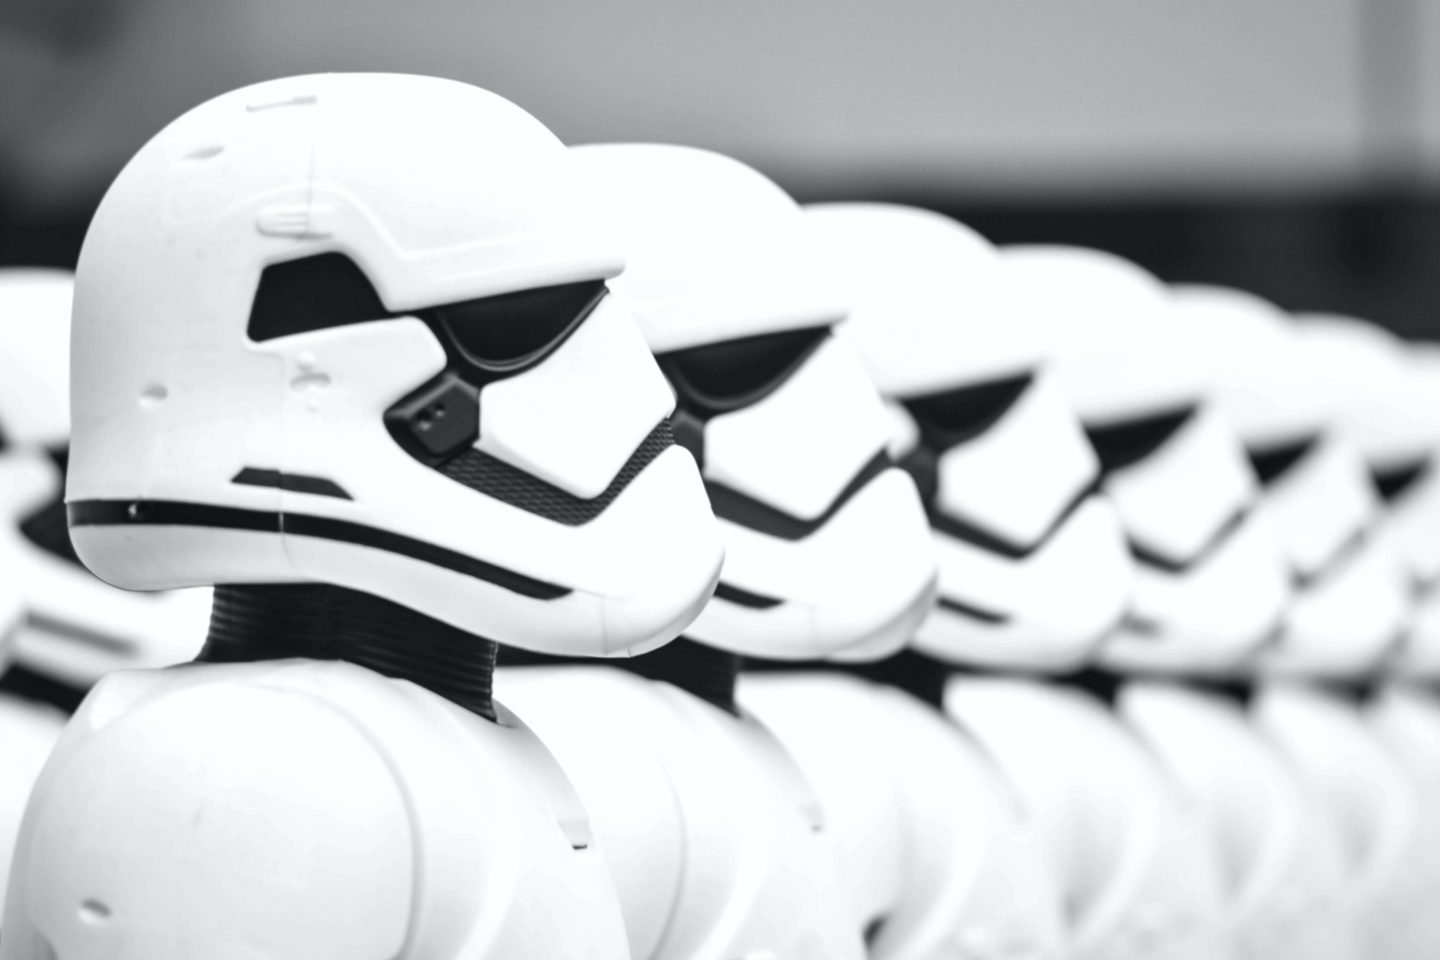 100 Easy General Knowledge Questions and Answers - Storm Troopers